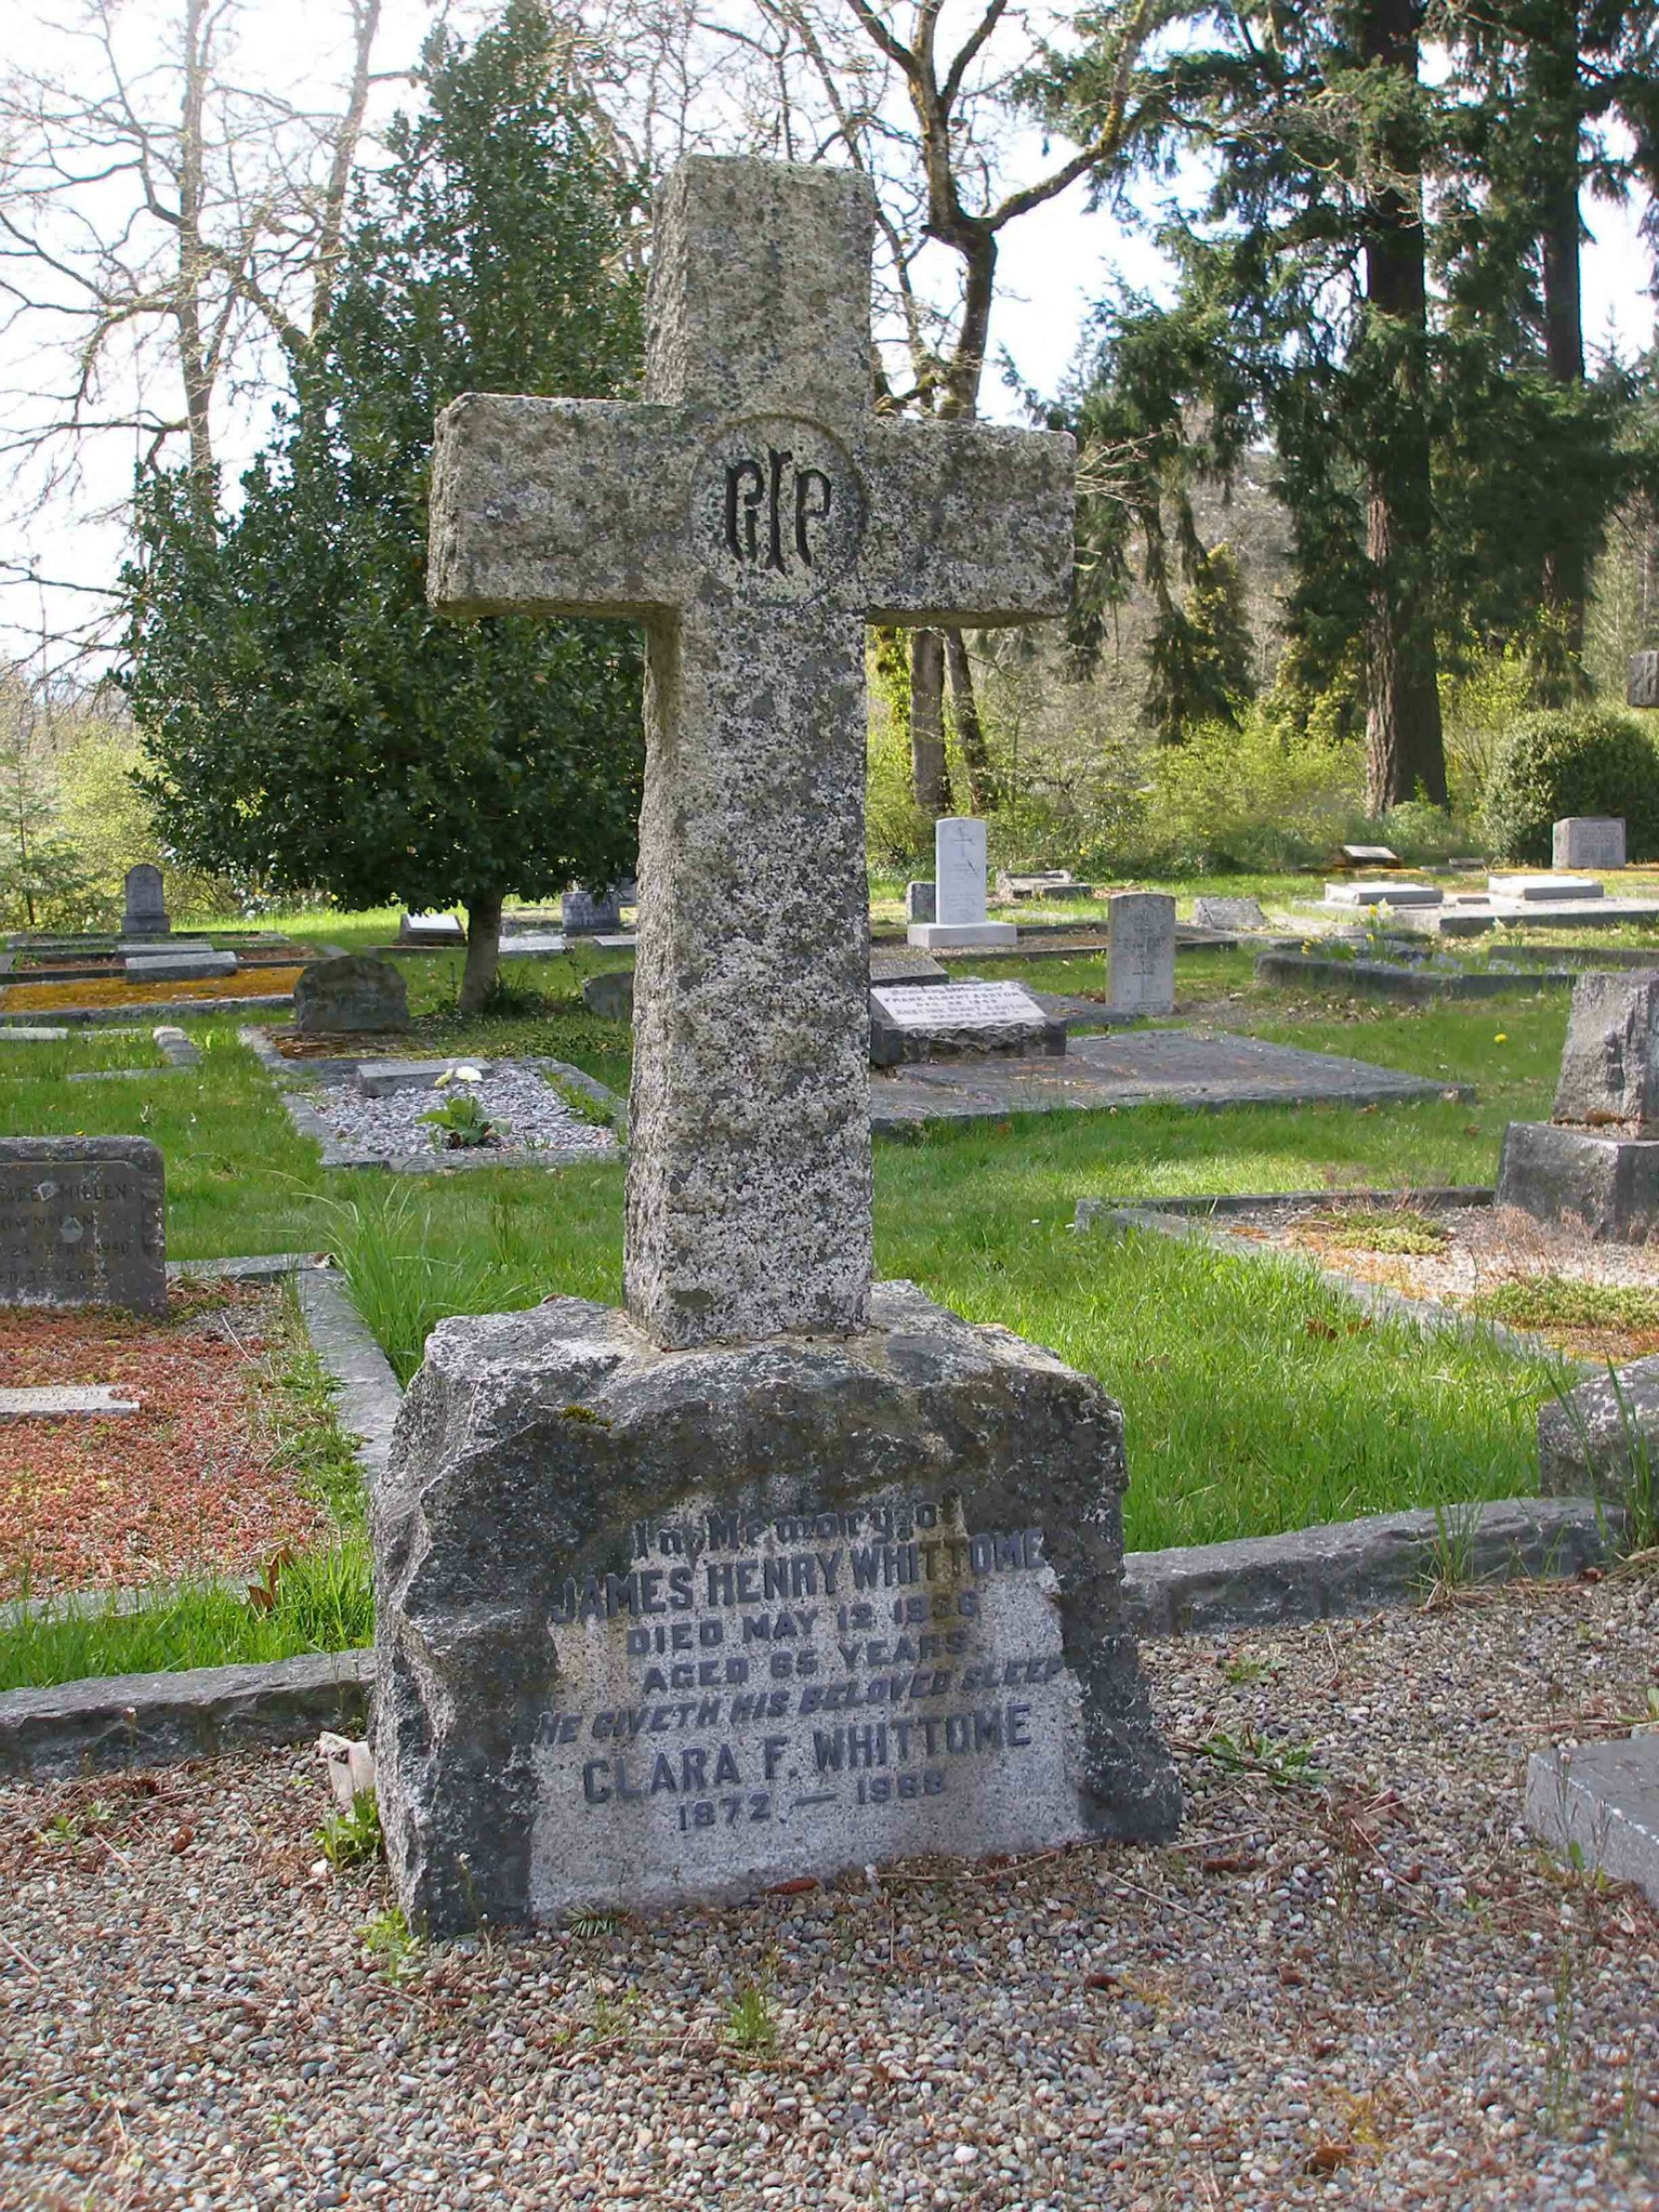 The grave of James Henry Whittome (1872-1936) and Clara Whittome in St. Peter's Quamichan cemetery